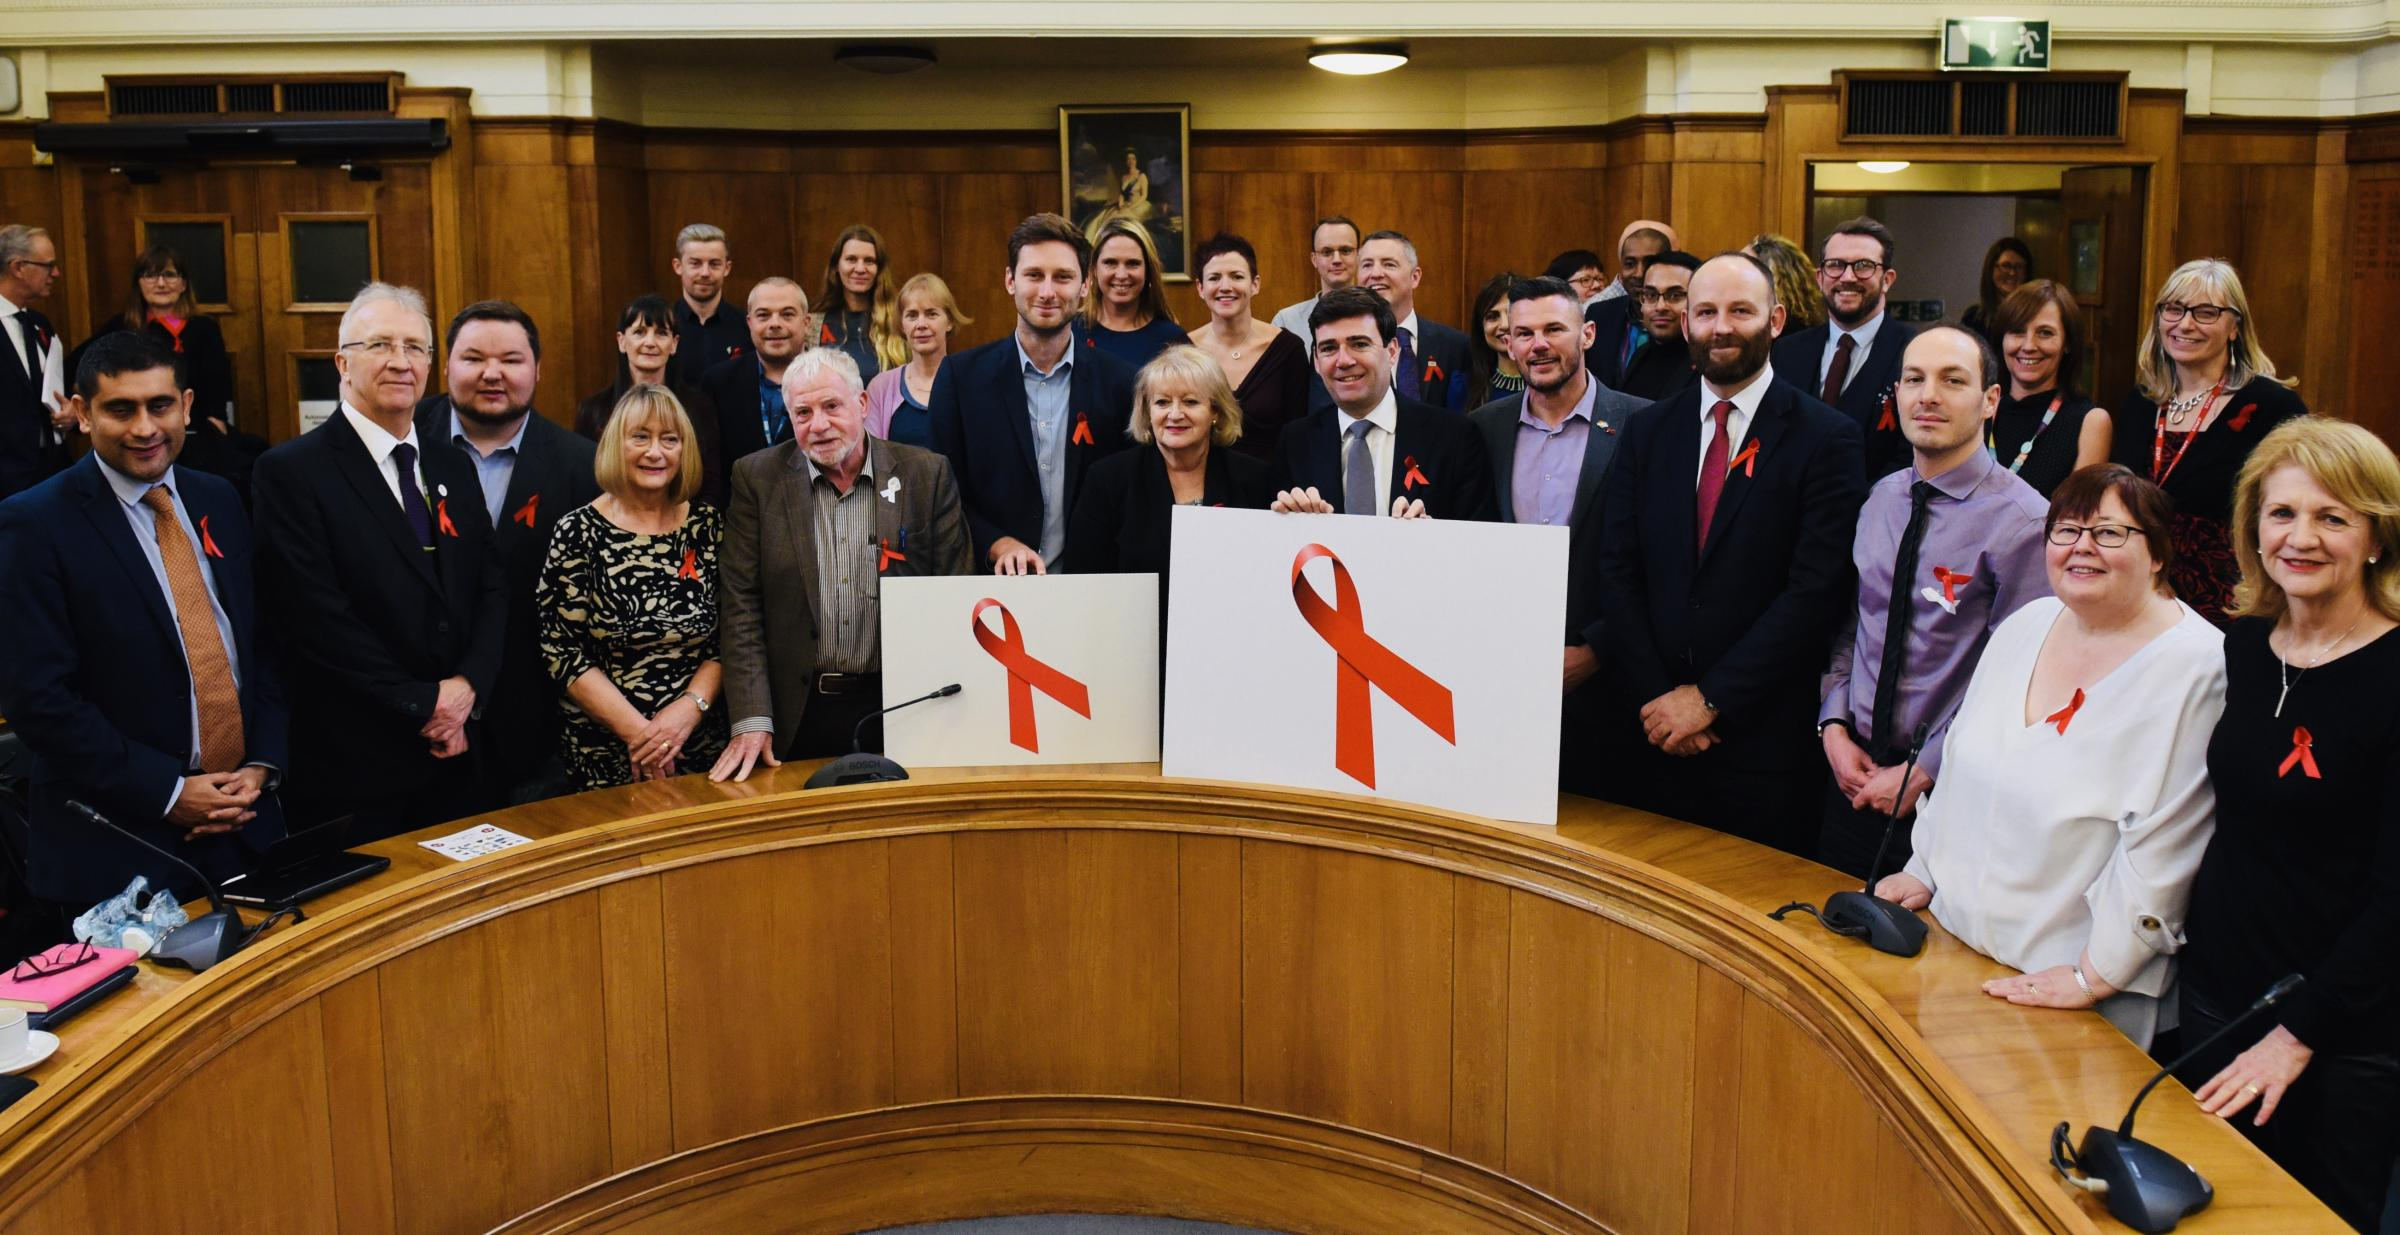 Greater Manchester's HIV commitment